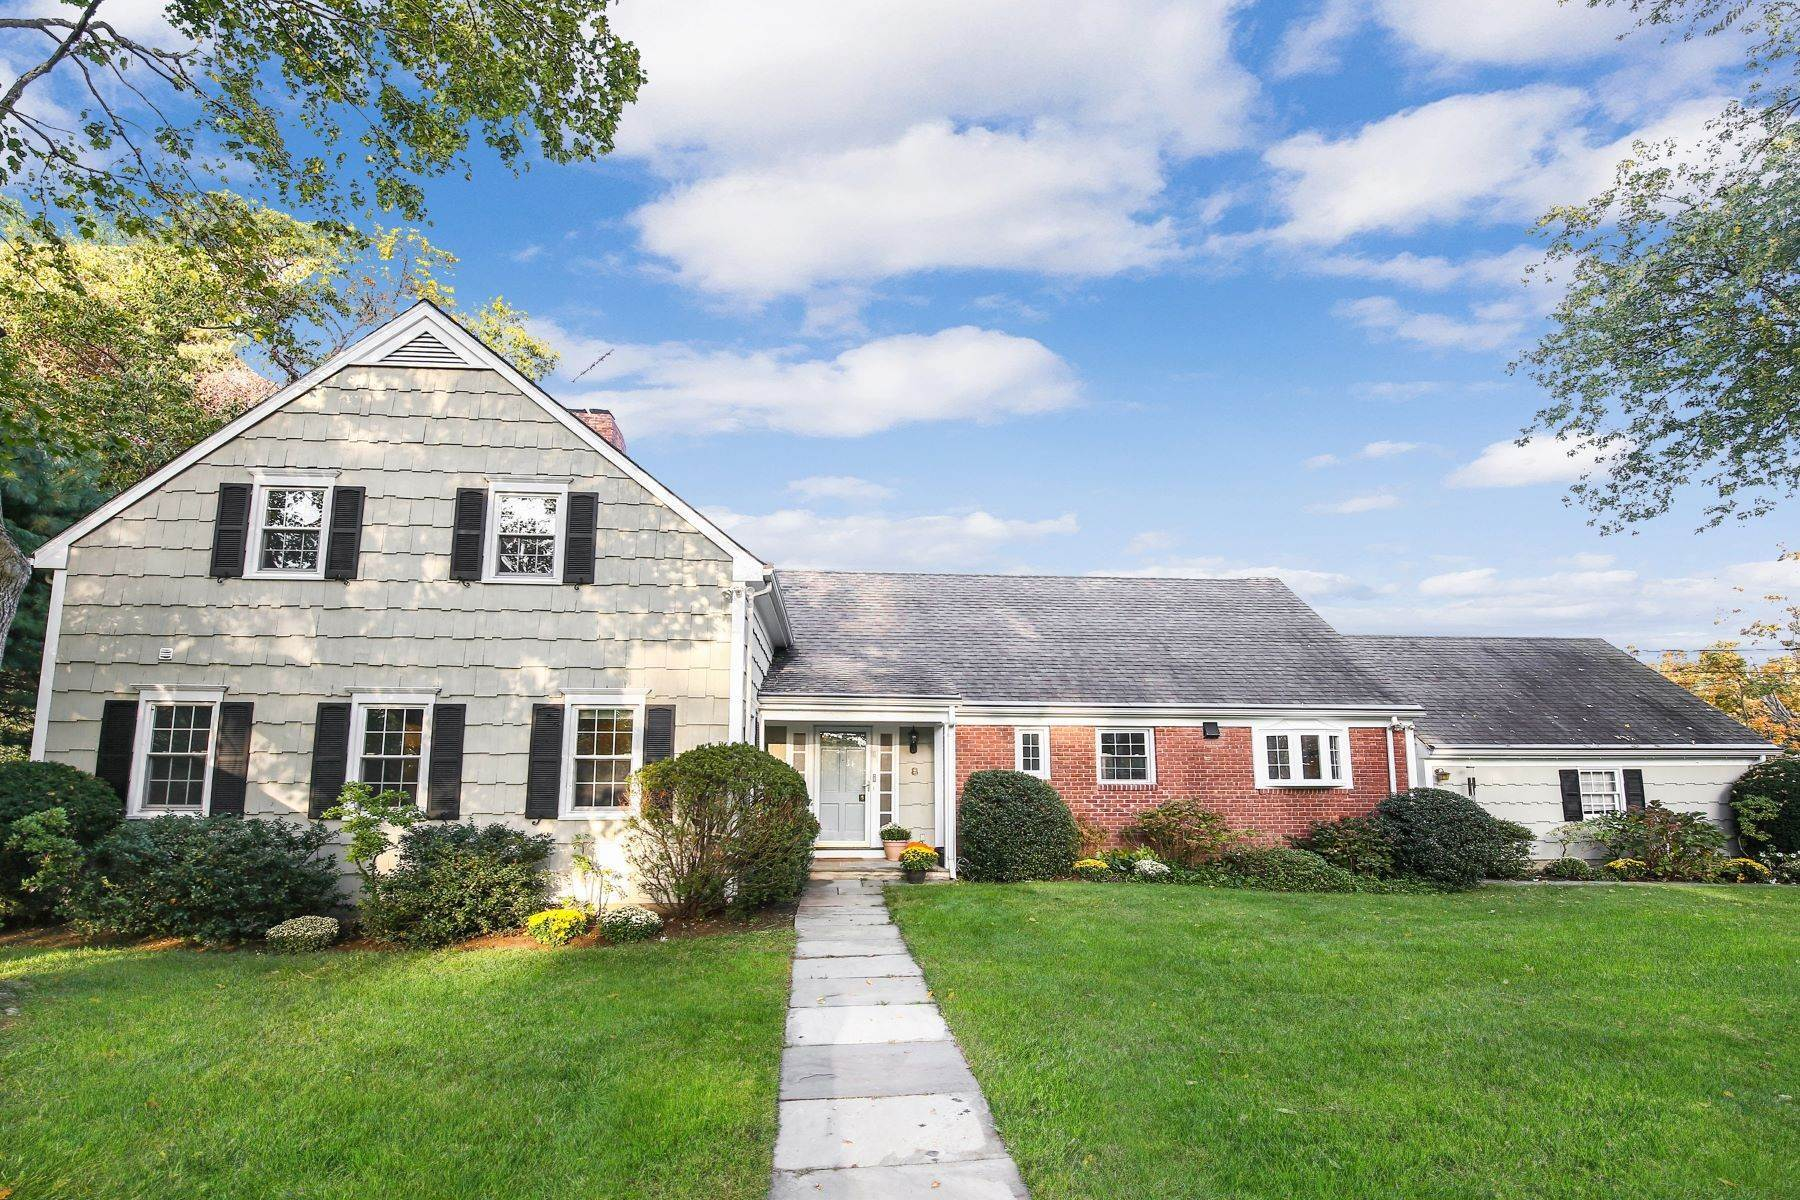 Single Family Homes for Sale at Great Location, golfer's paradise! 8 Carriage House Lane Mamaroneck, New York 10543 United States